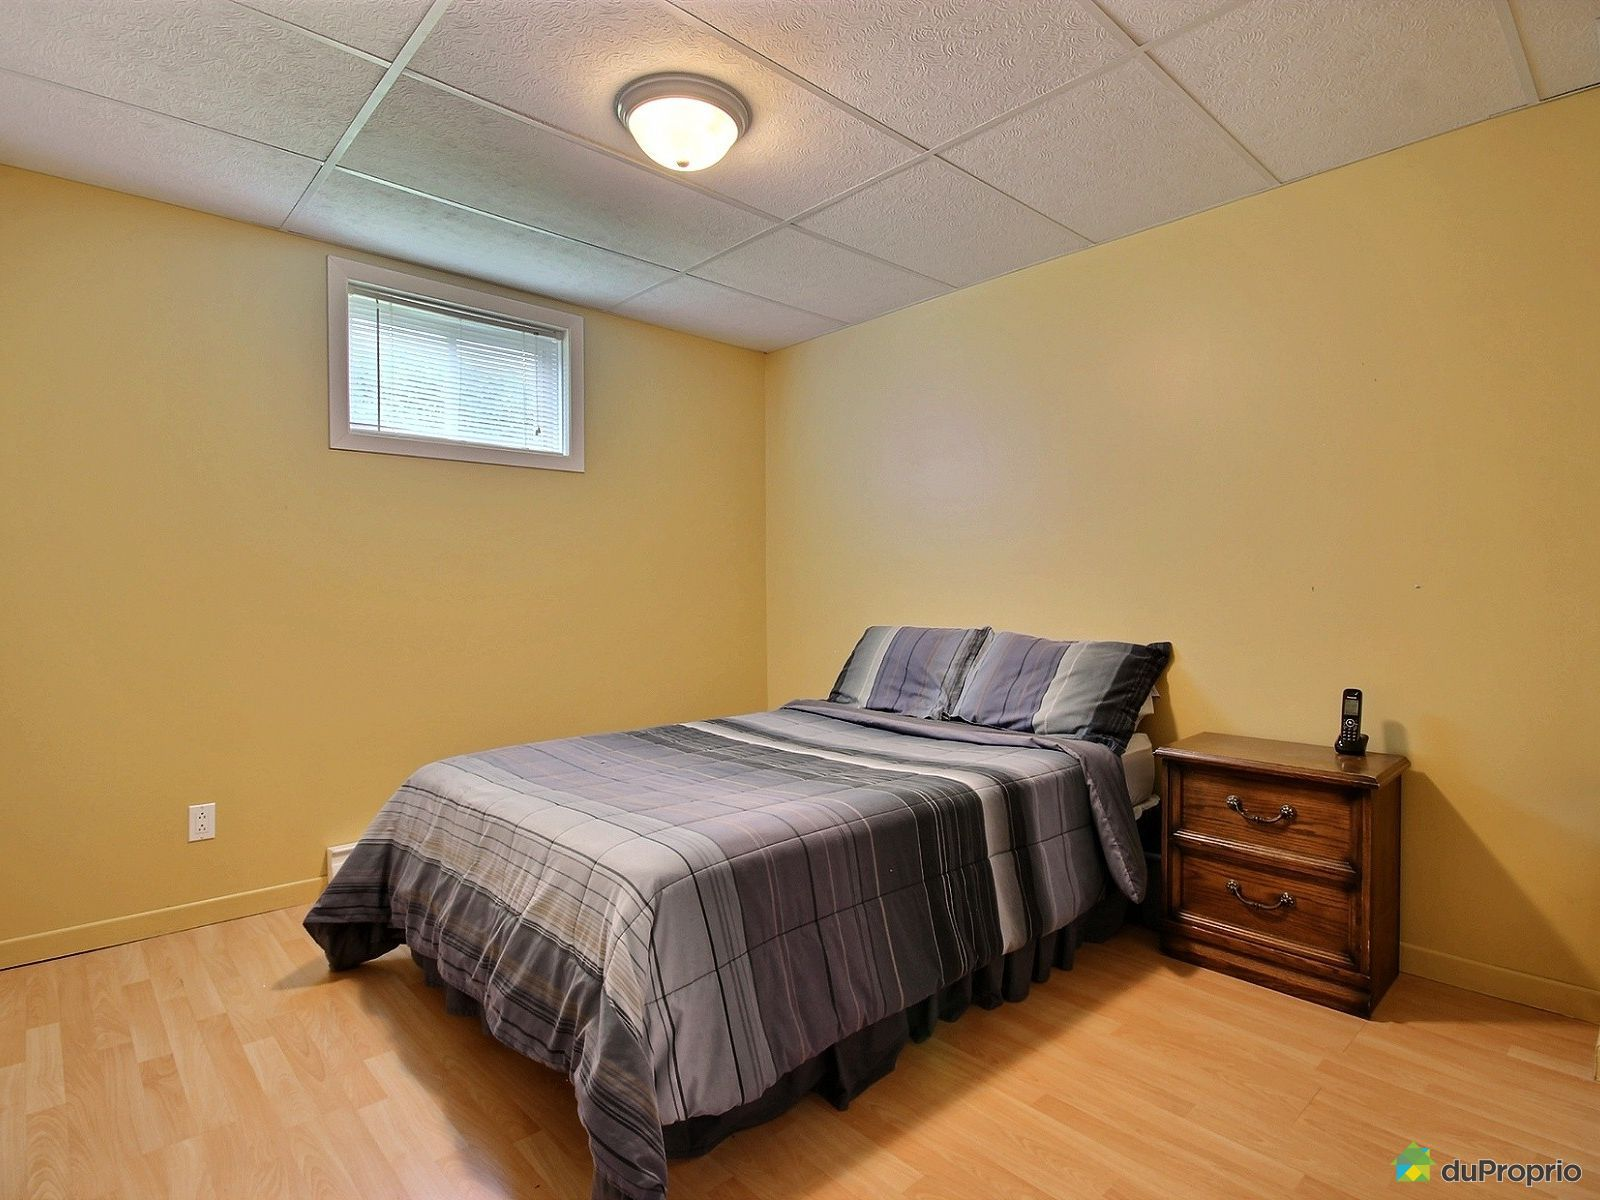 House for sale in lac st charles 661 rue des caryers for 3 bedroom house with basement for sale